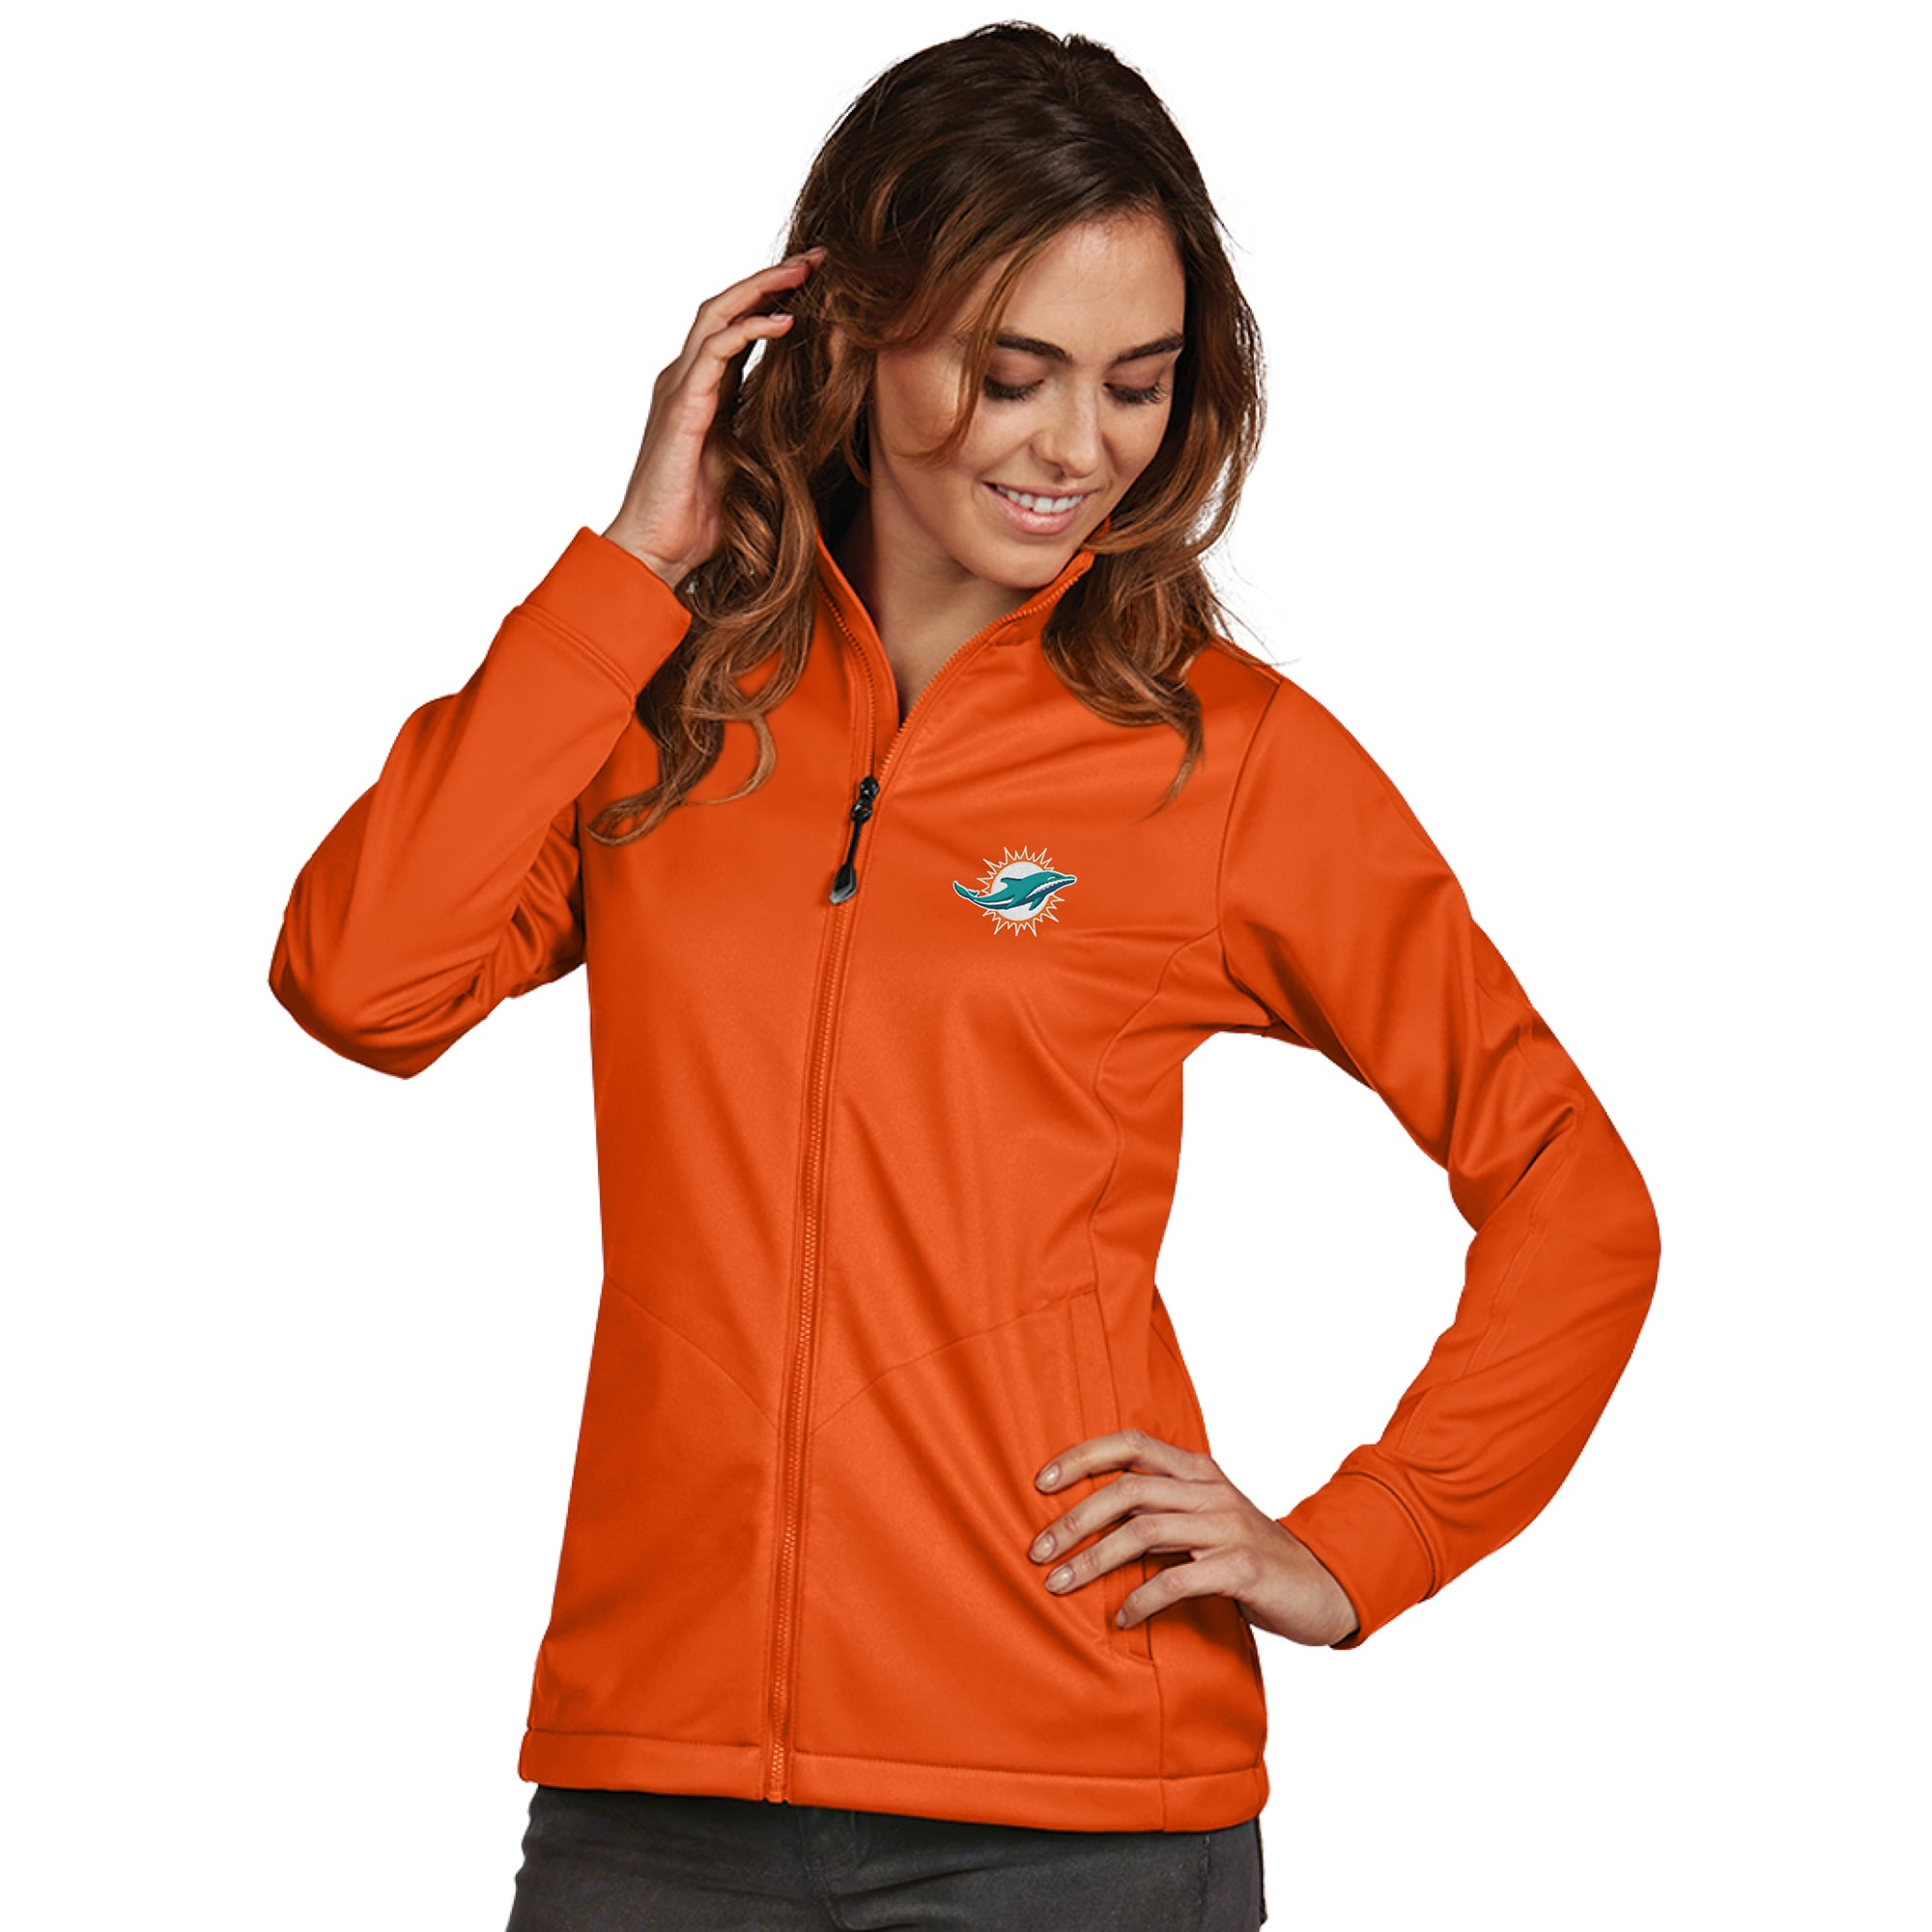 Miami Dolphins Women's Antigua Full-Zip Golf Jacket - Orange